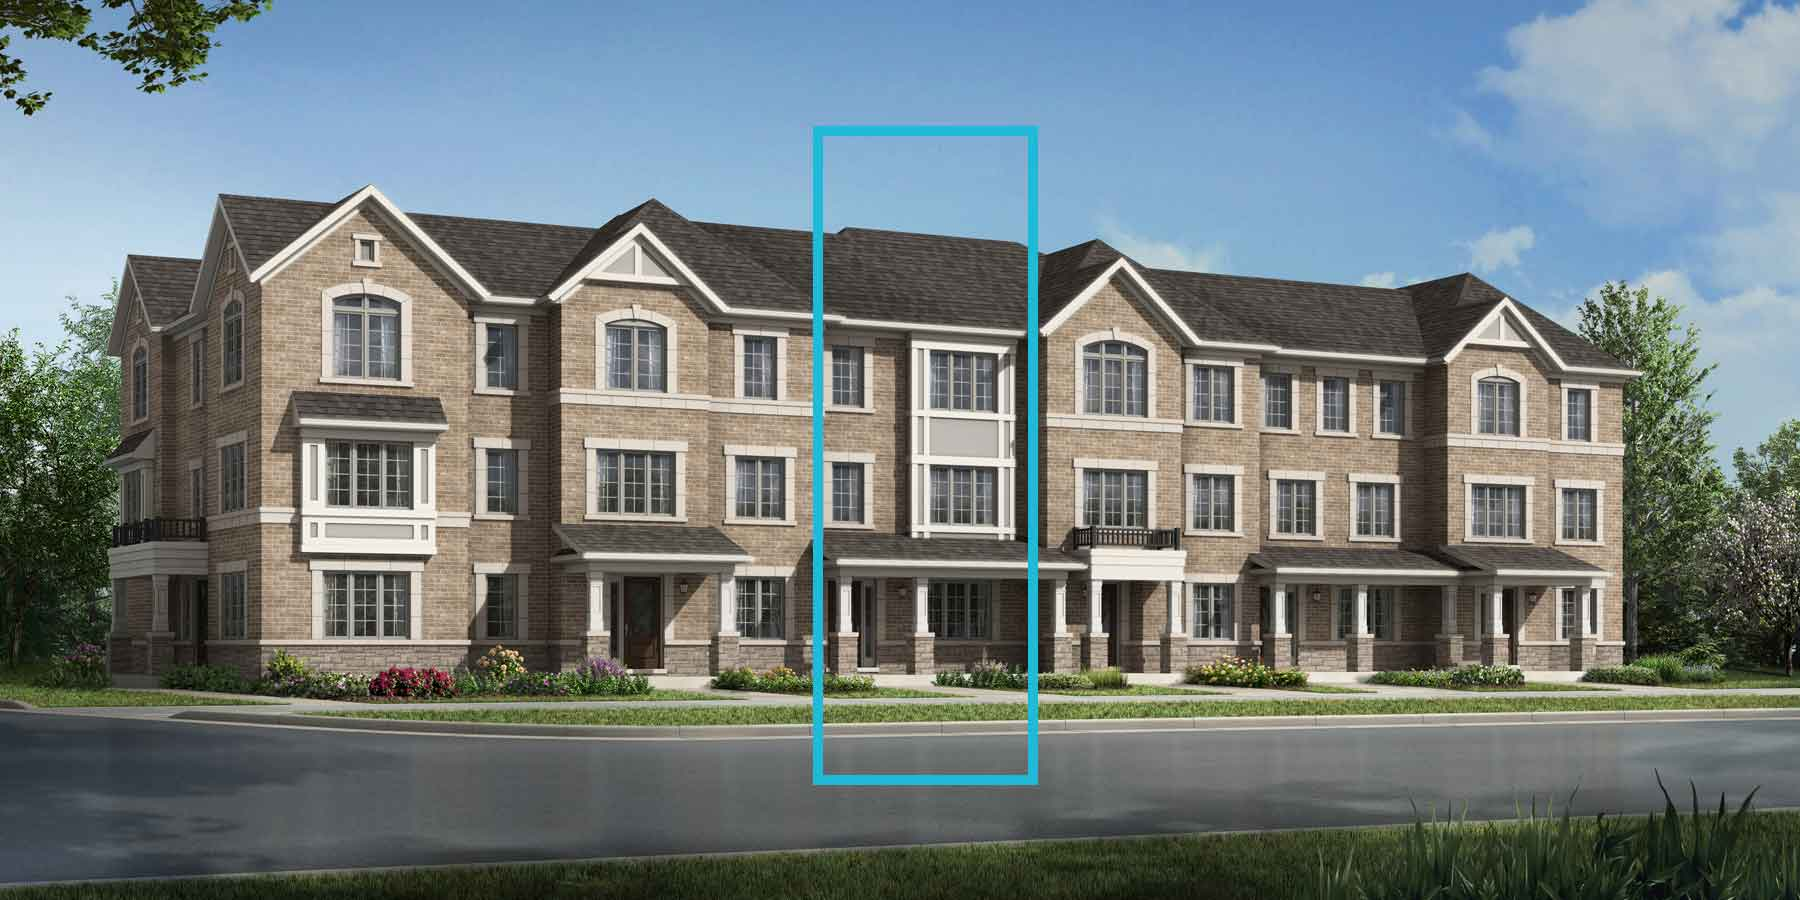 Denmar Plan TownHomes at Seaton Whitevale in Pickering Ontario by Mattamy Homes